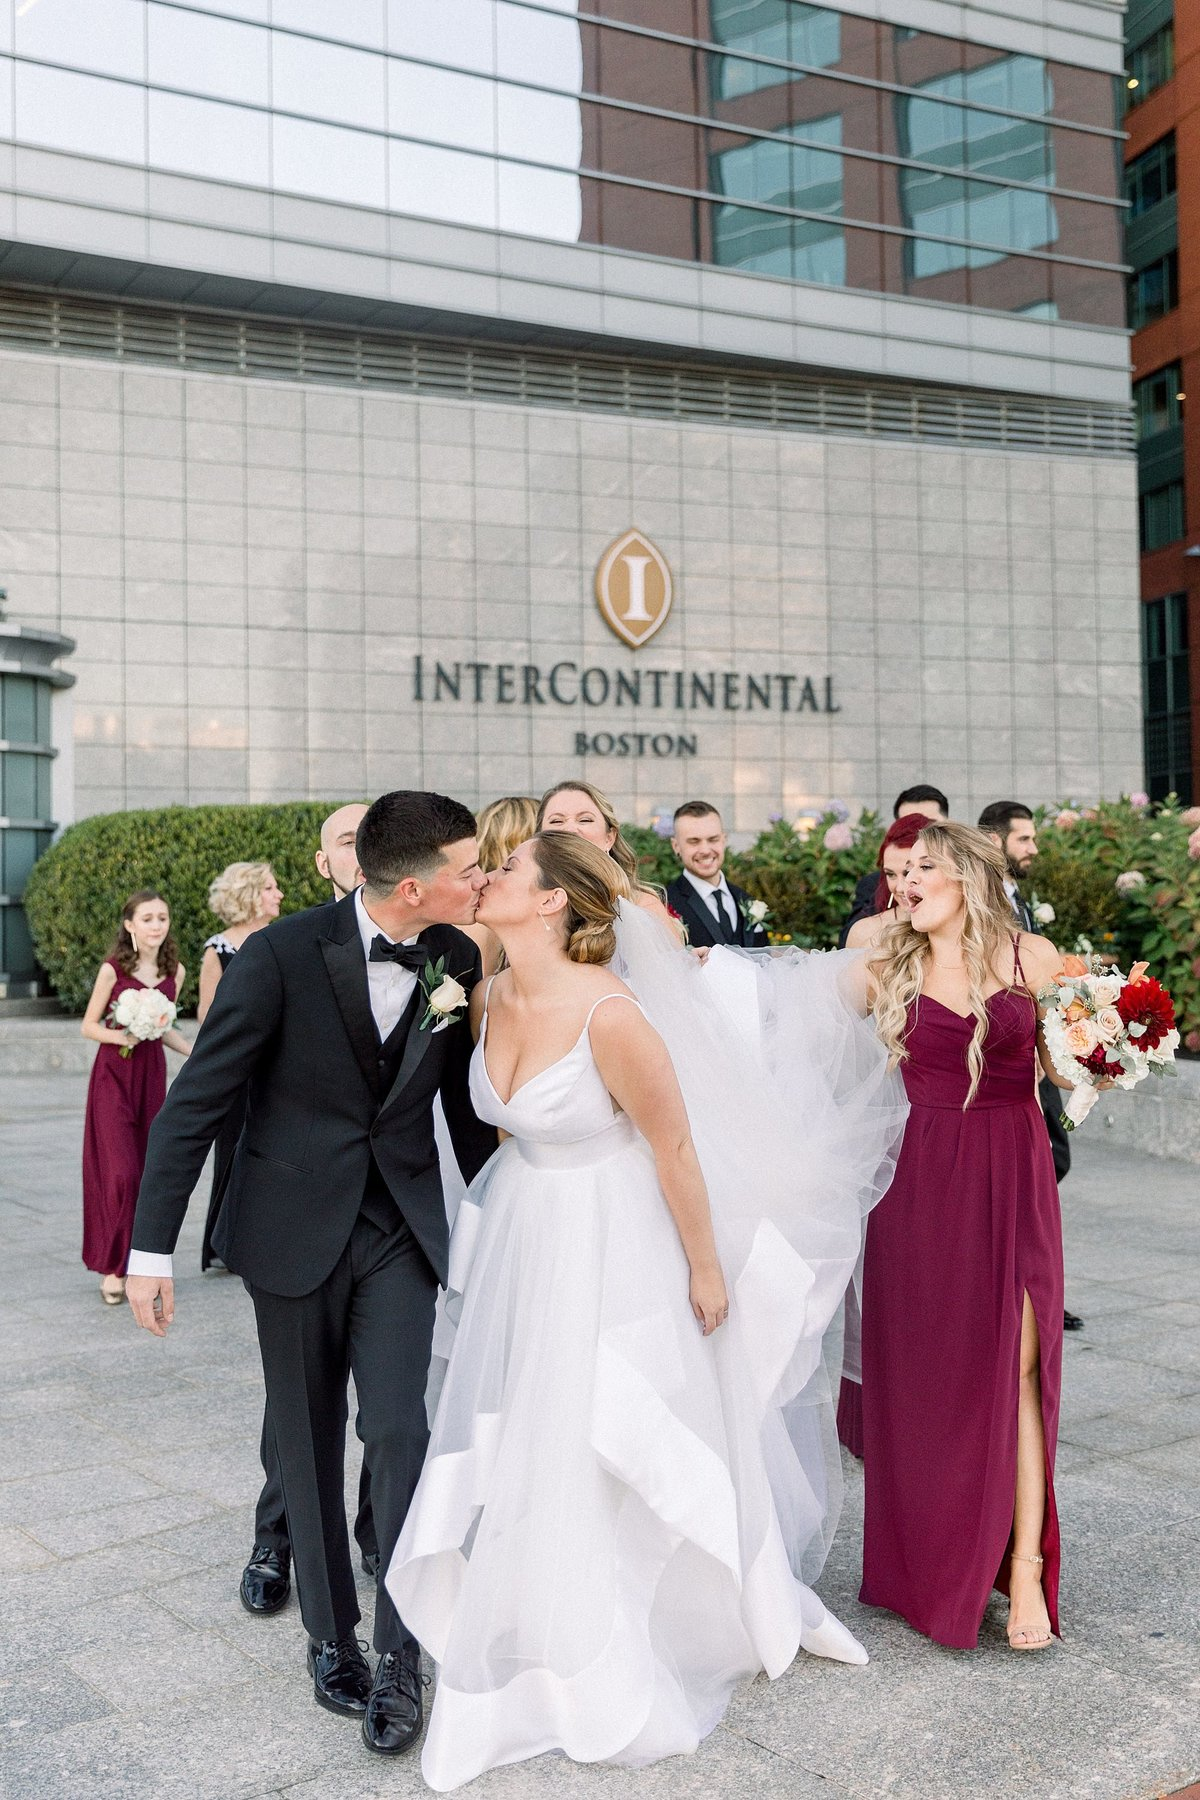 InterContinental Boston Wedding Photos By Halie-Post-Ceremony Portraits-4